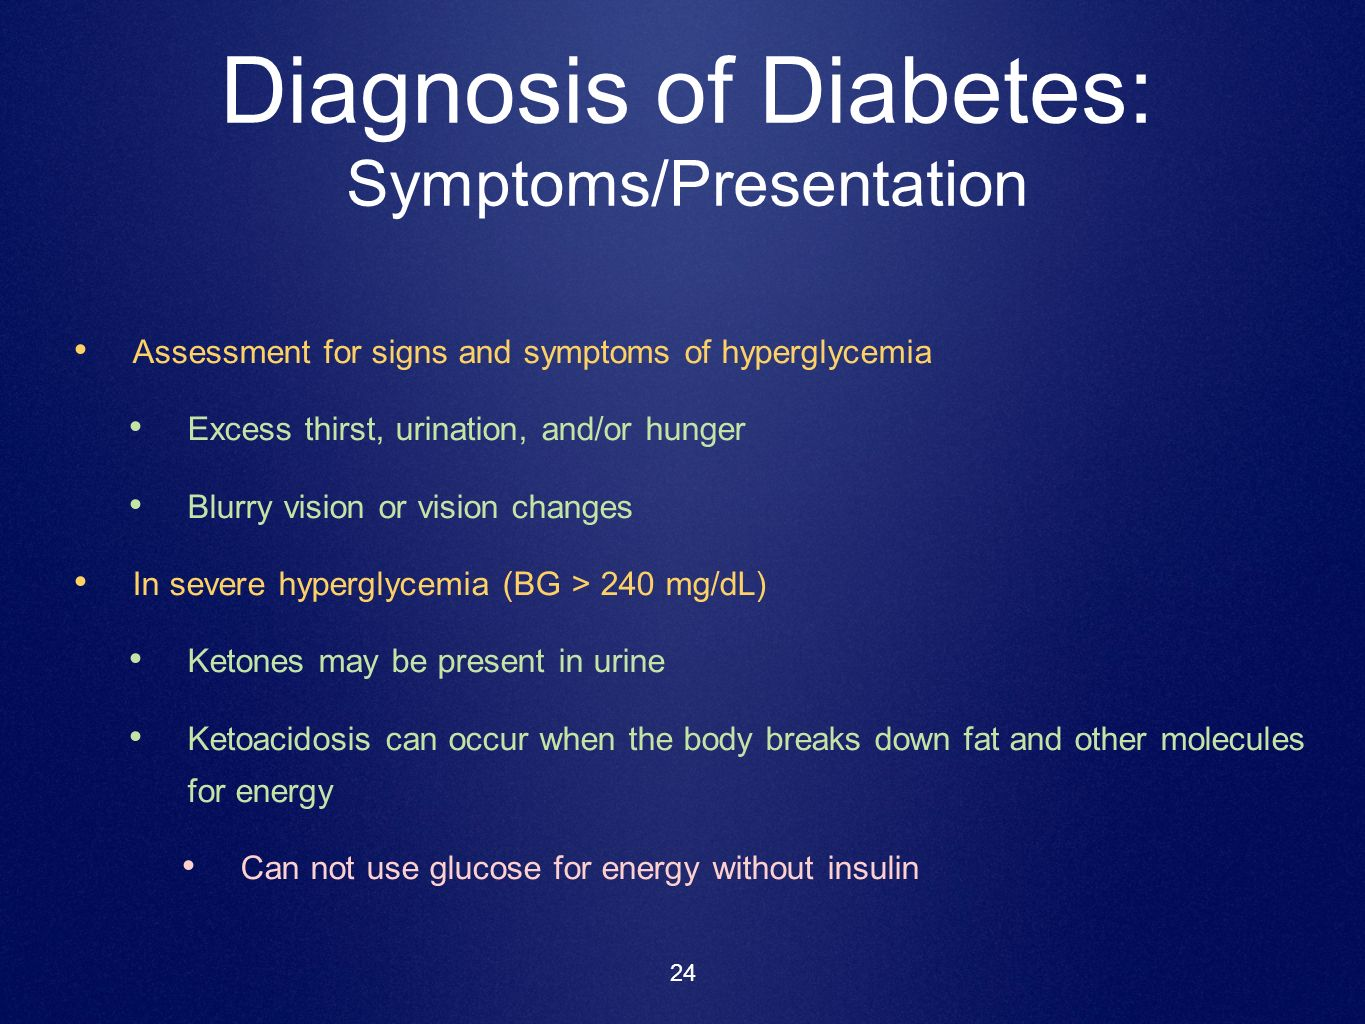 Diagnosis of Diabetes: Symptoms/Presentation